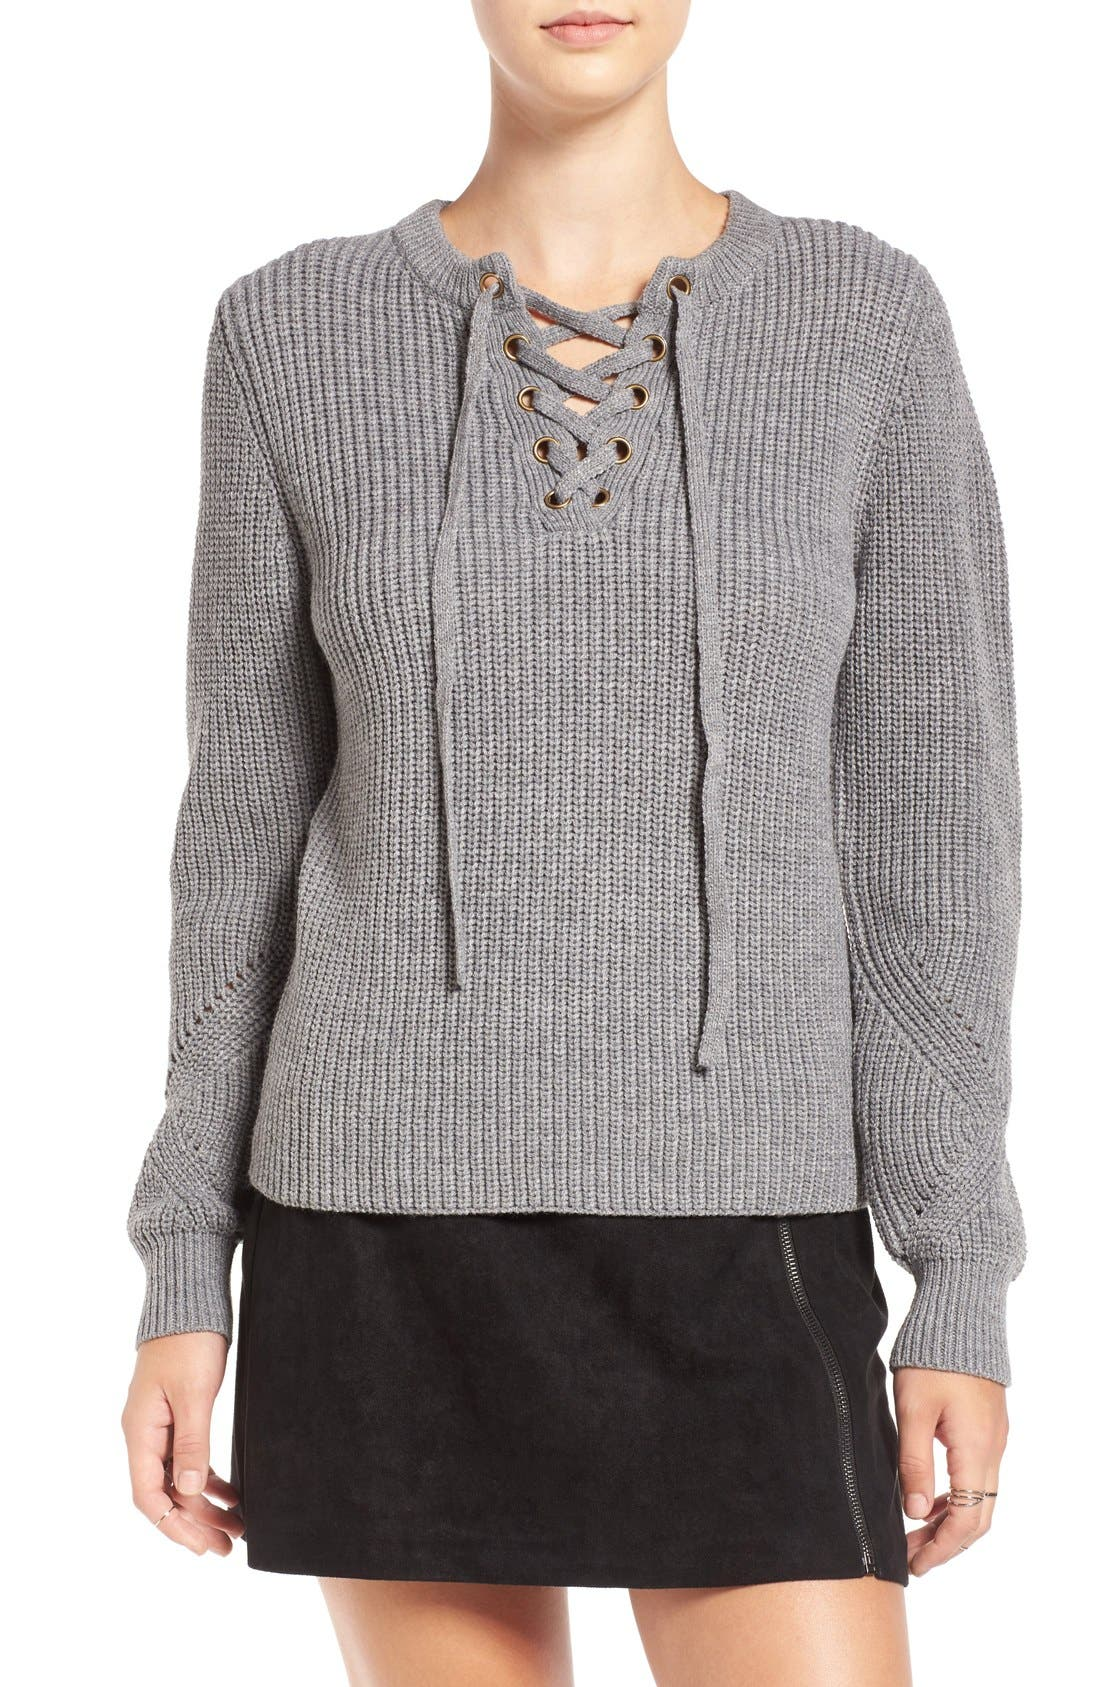 Alternate Image 1 Selected - Elodie Rib Knit Lace-Up Sweater